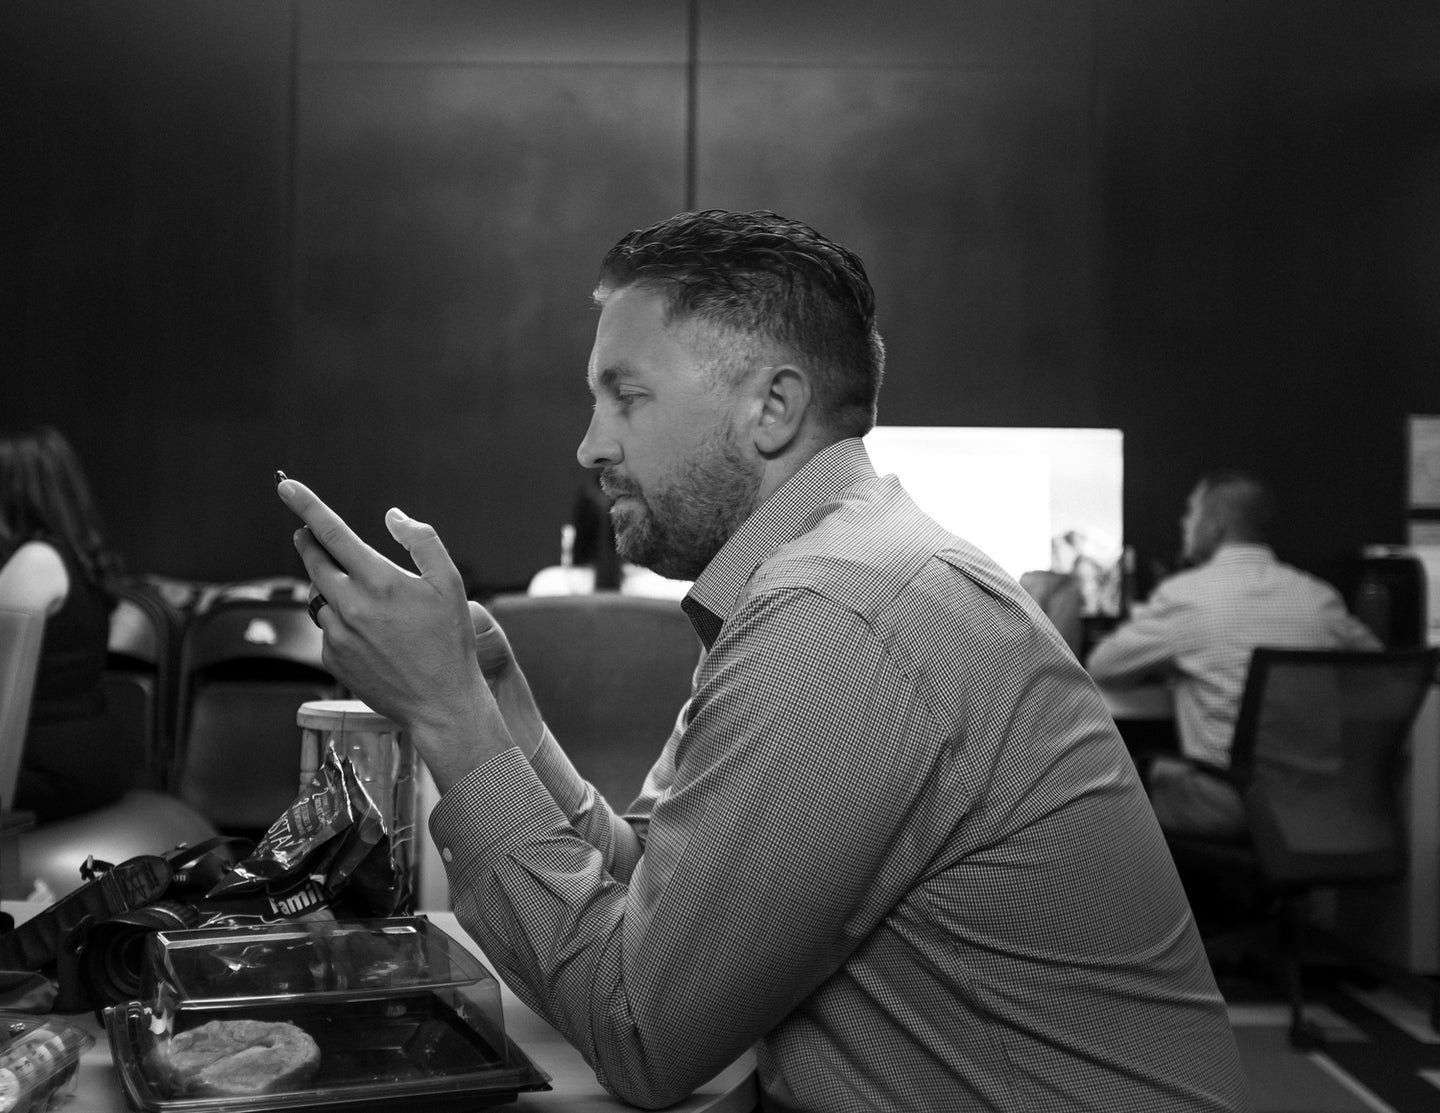 a man sitting at a desk looking at a phone